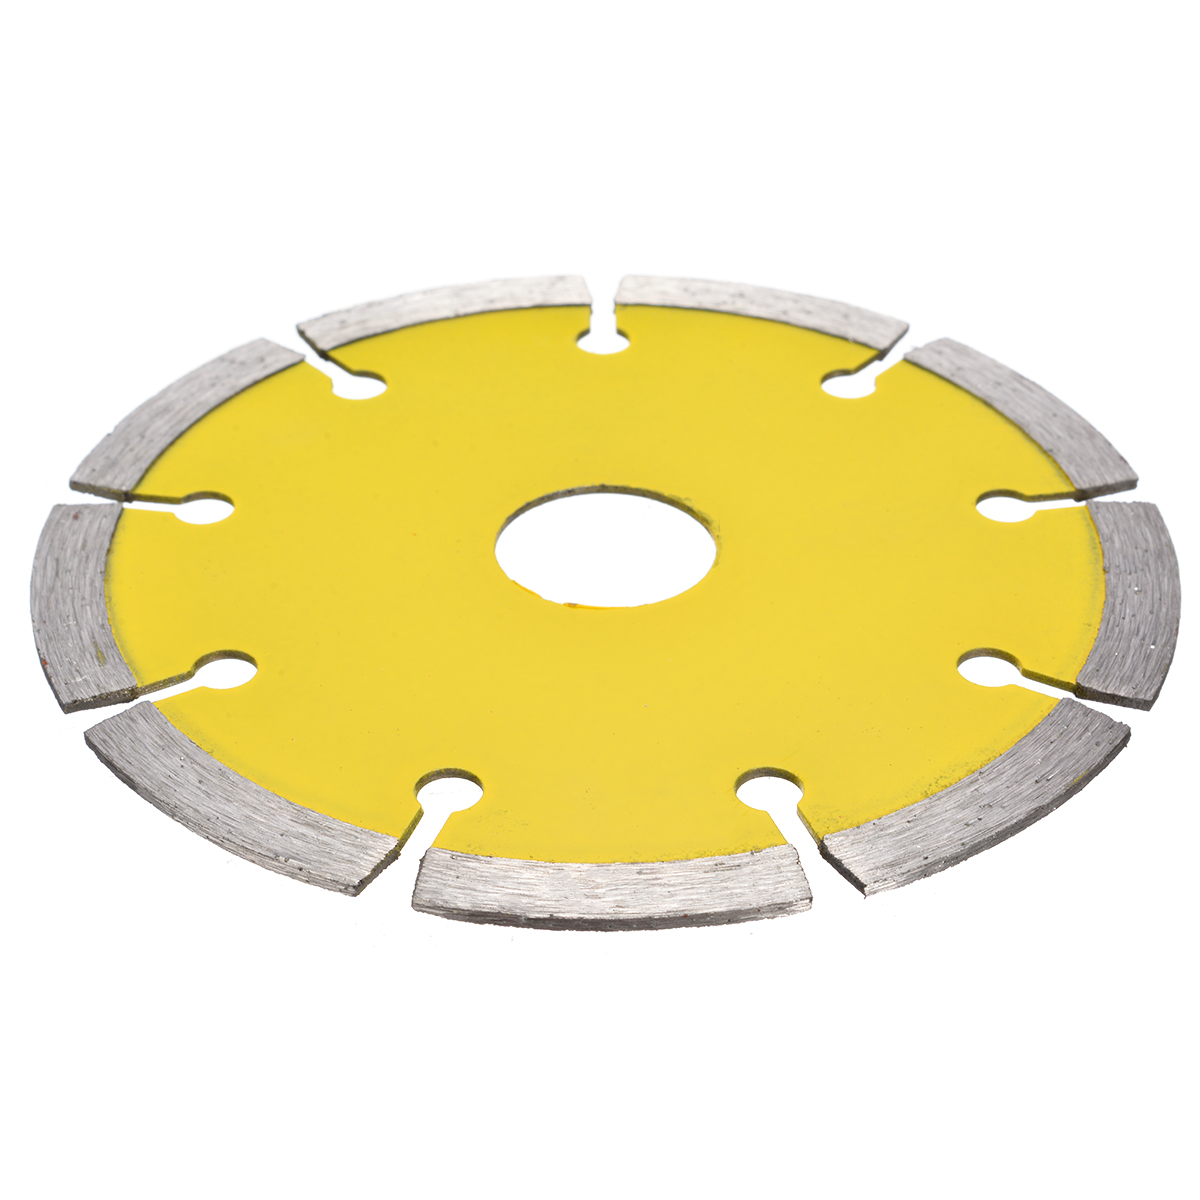 115mm Diamond Ceramic Tile Cutting Disc Angle Grind Saw Blades For Brick Concrete Ceramic Grinding Cutting Blade Wheel